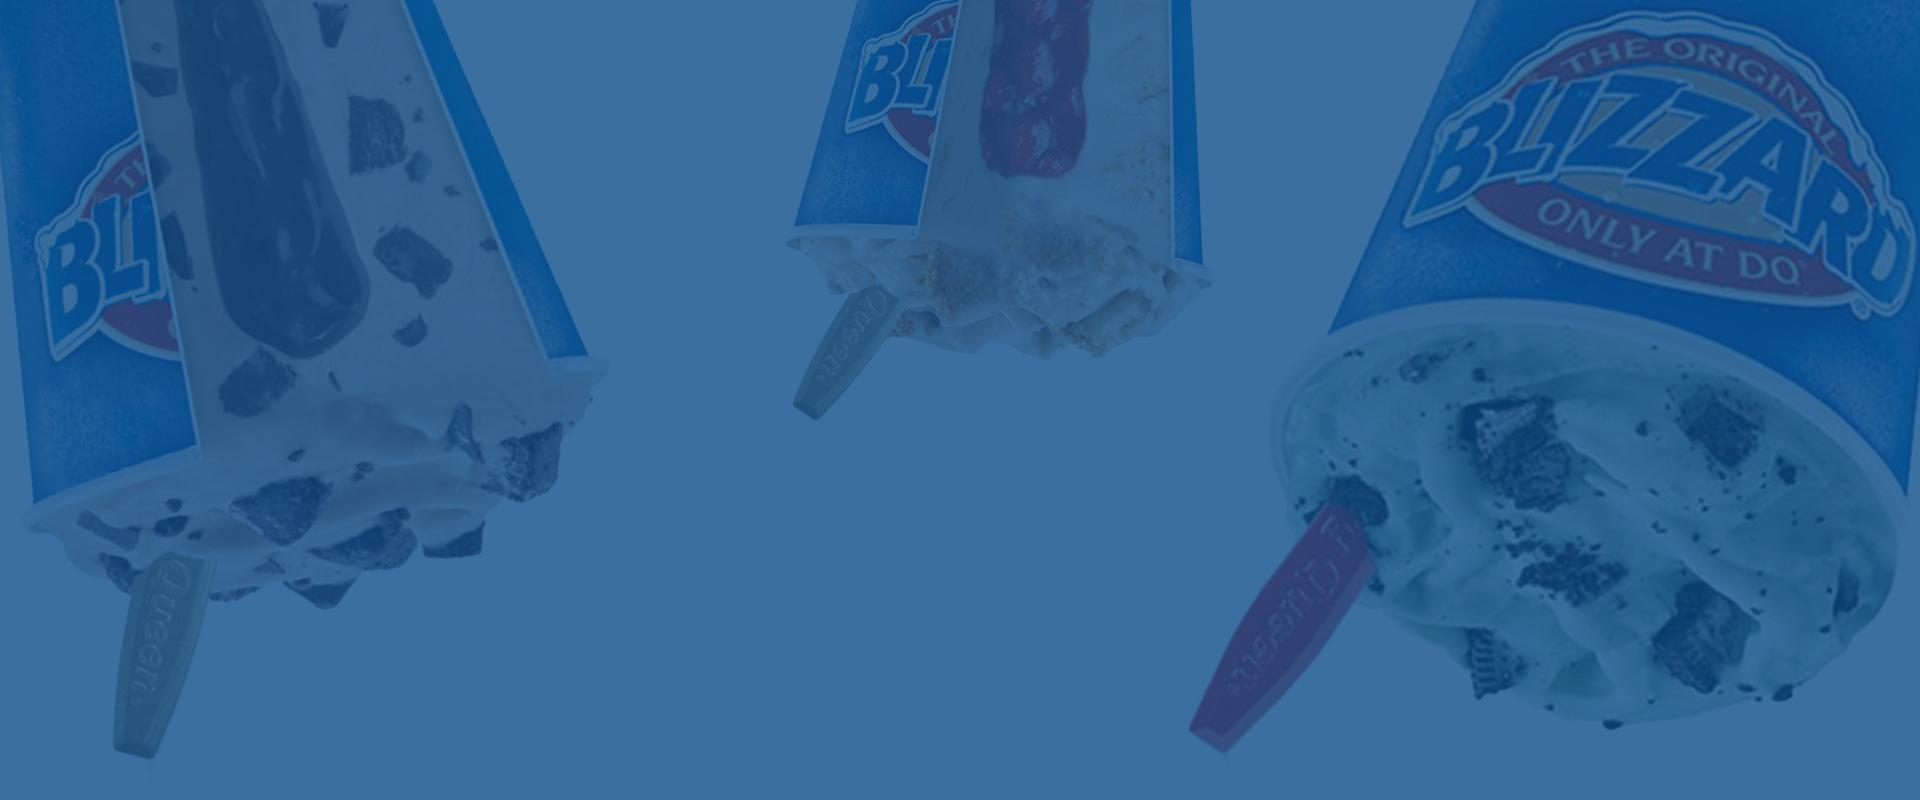 blizzards header